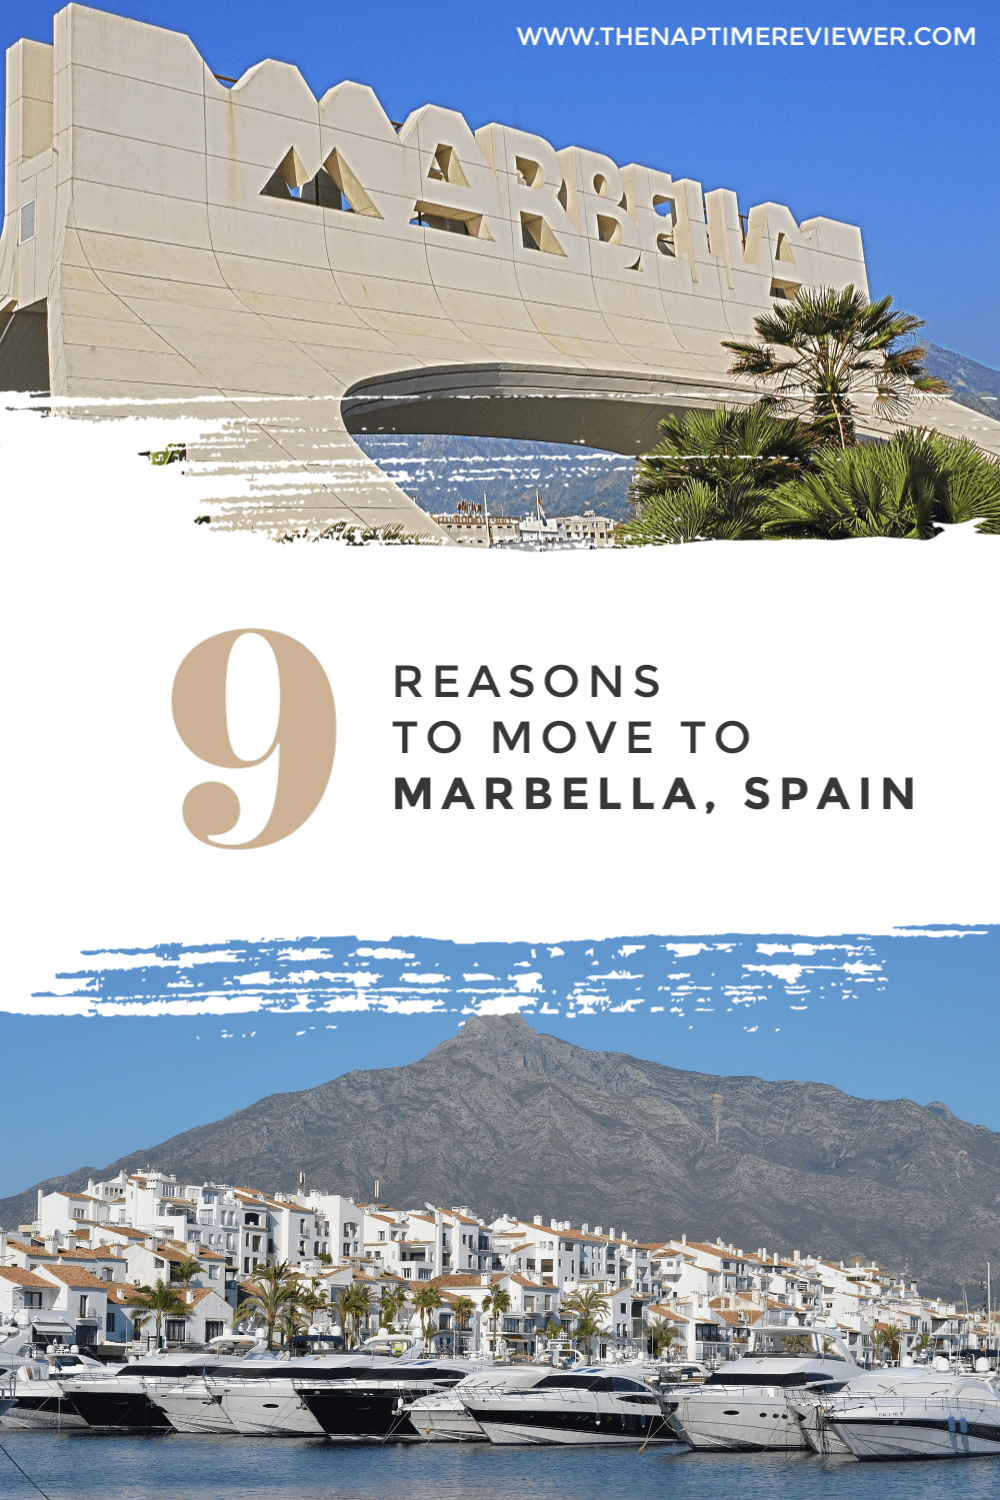 Tips for moving to Marbella, Spain